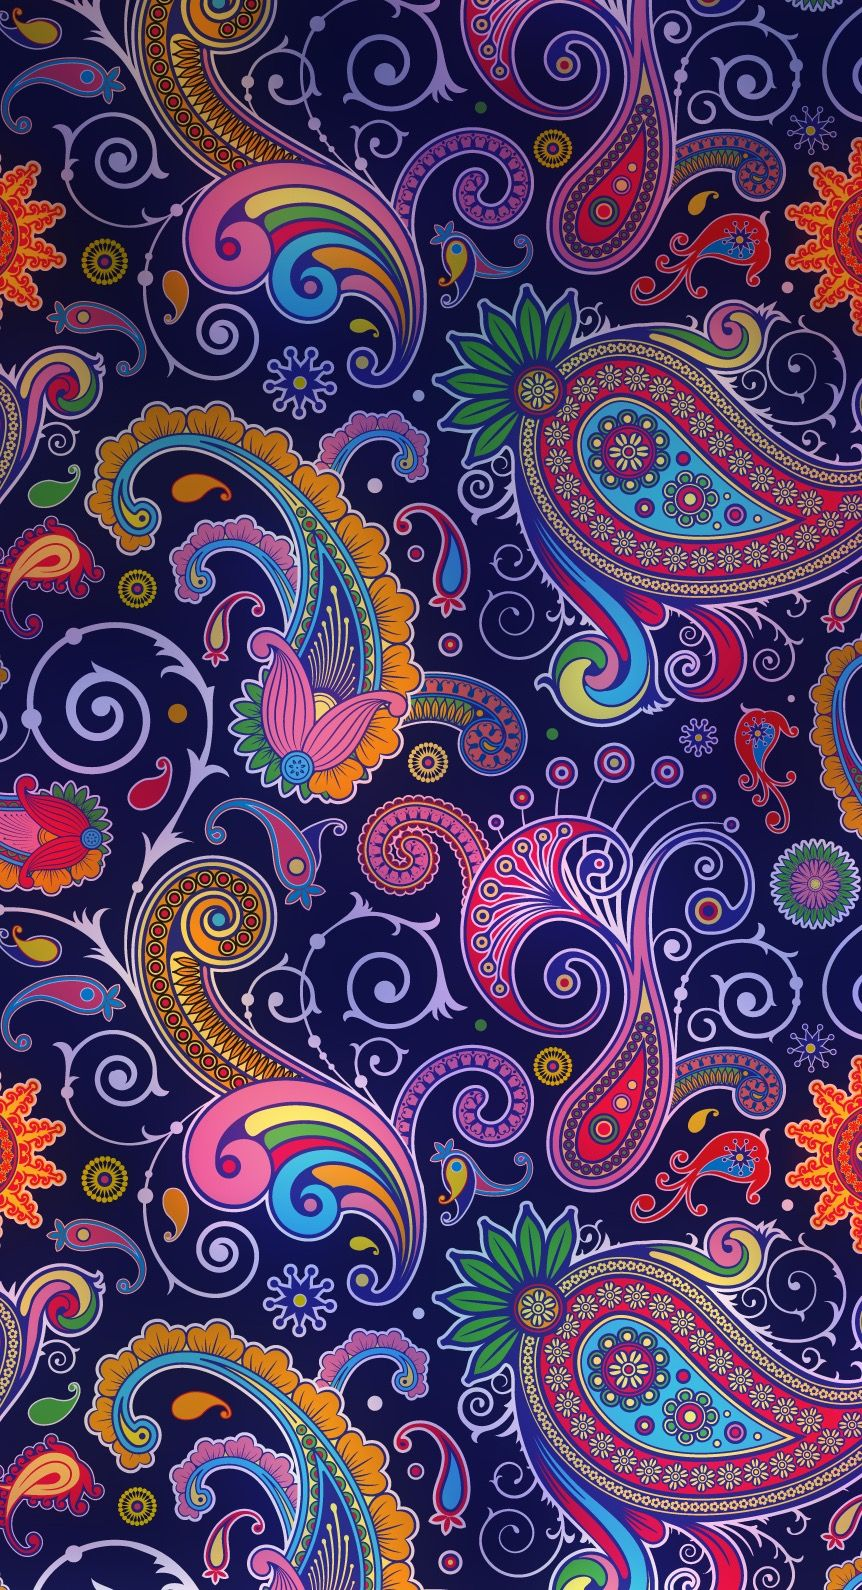 Mad For Mod Paisley Paisley Wallpaper Paisley Art Paisley